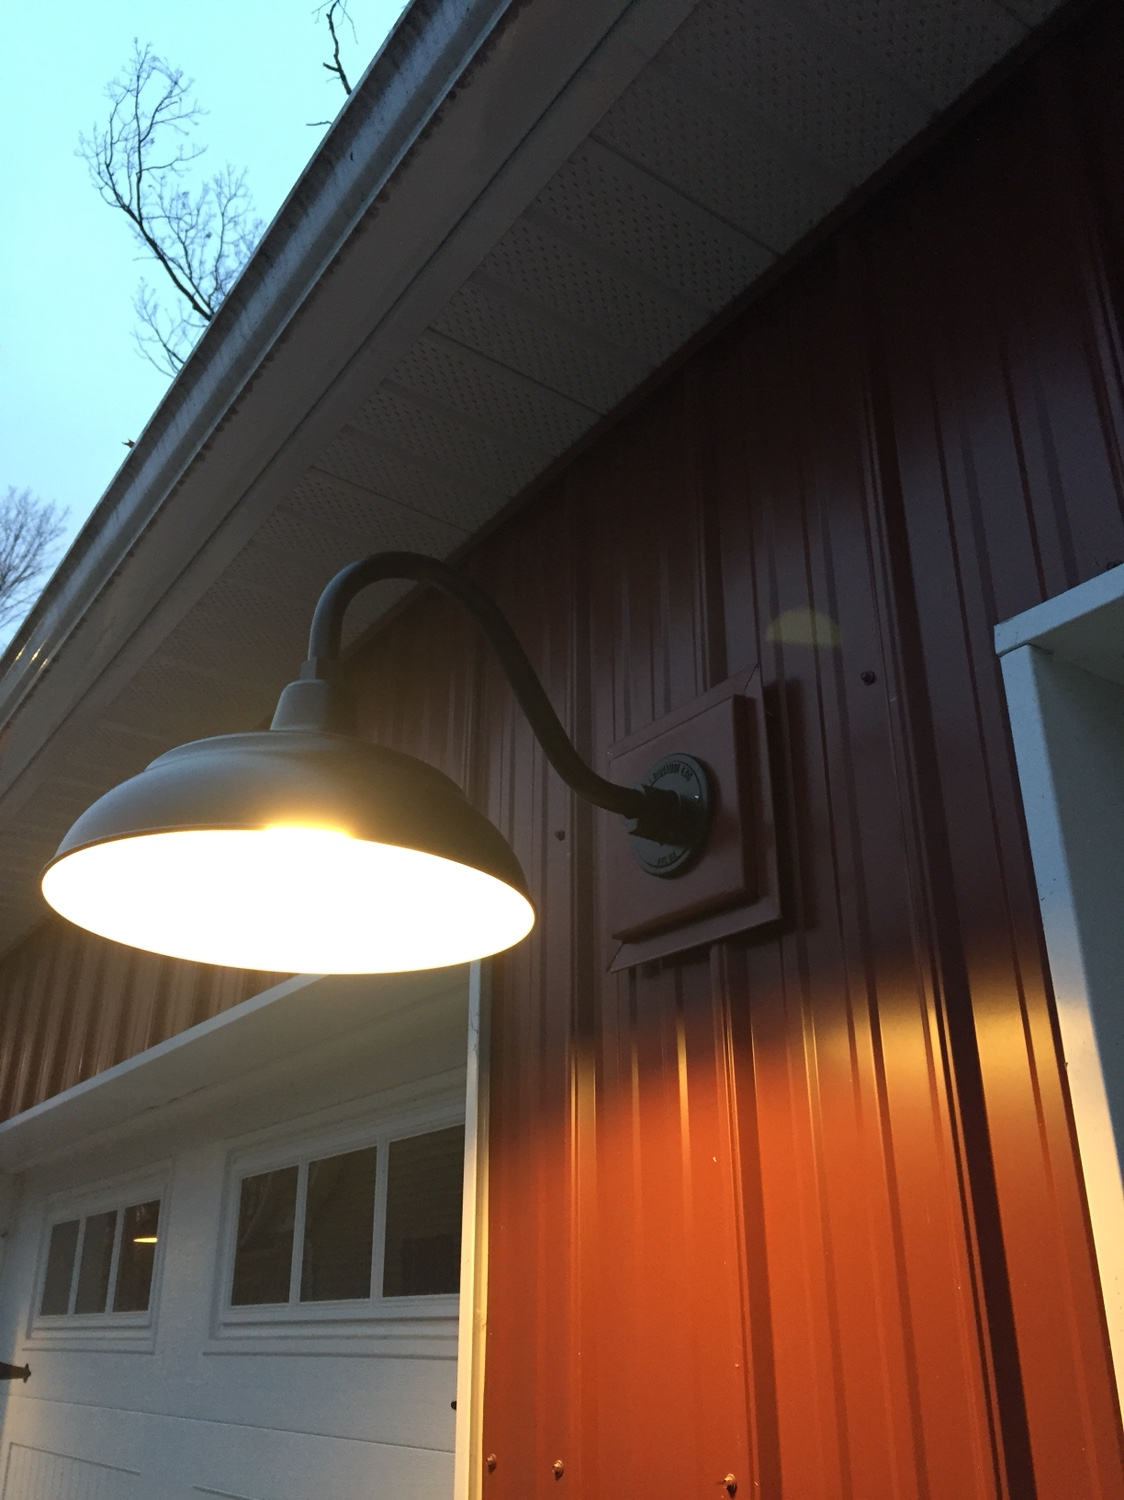 Mounting Lights Or Corrugated Metal Siding